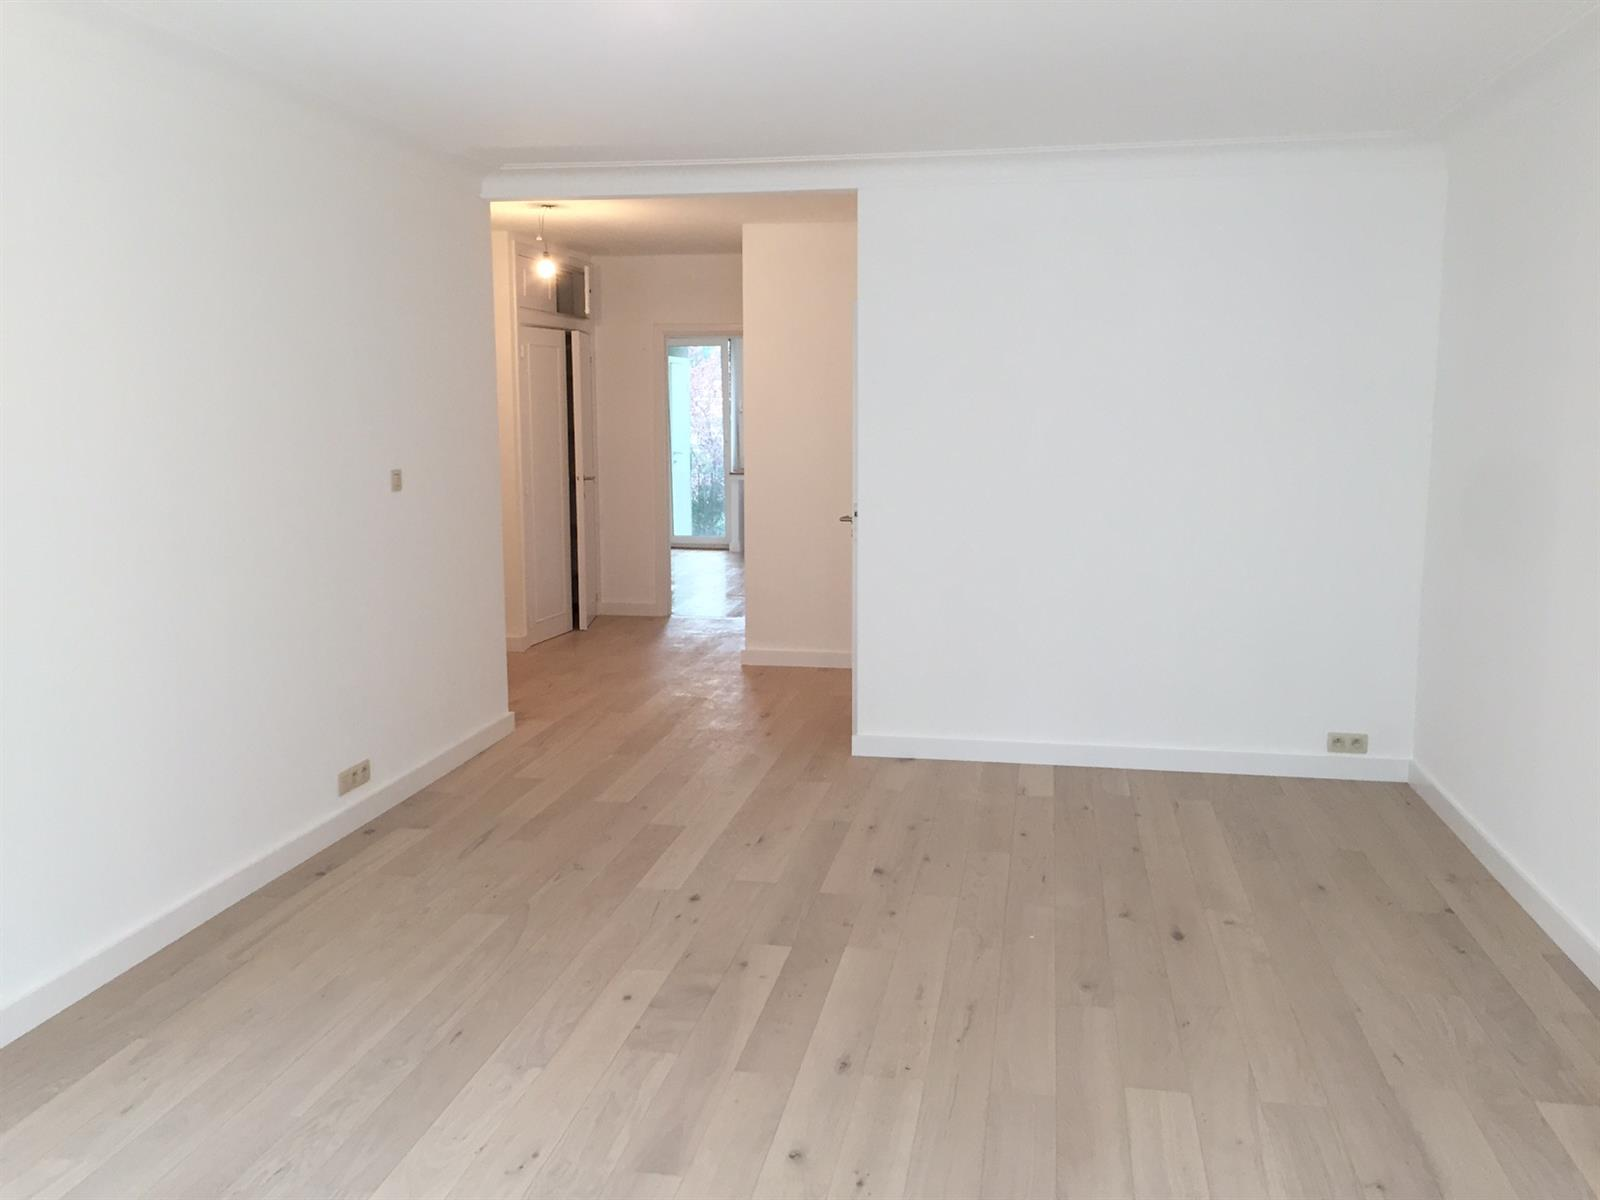 Appartement - Uccle - #4239849-6